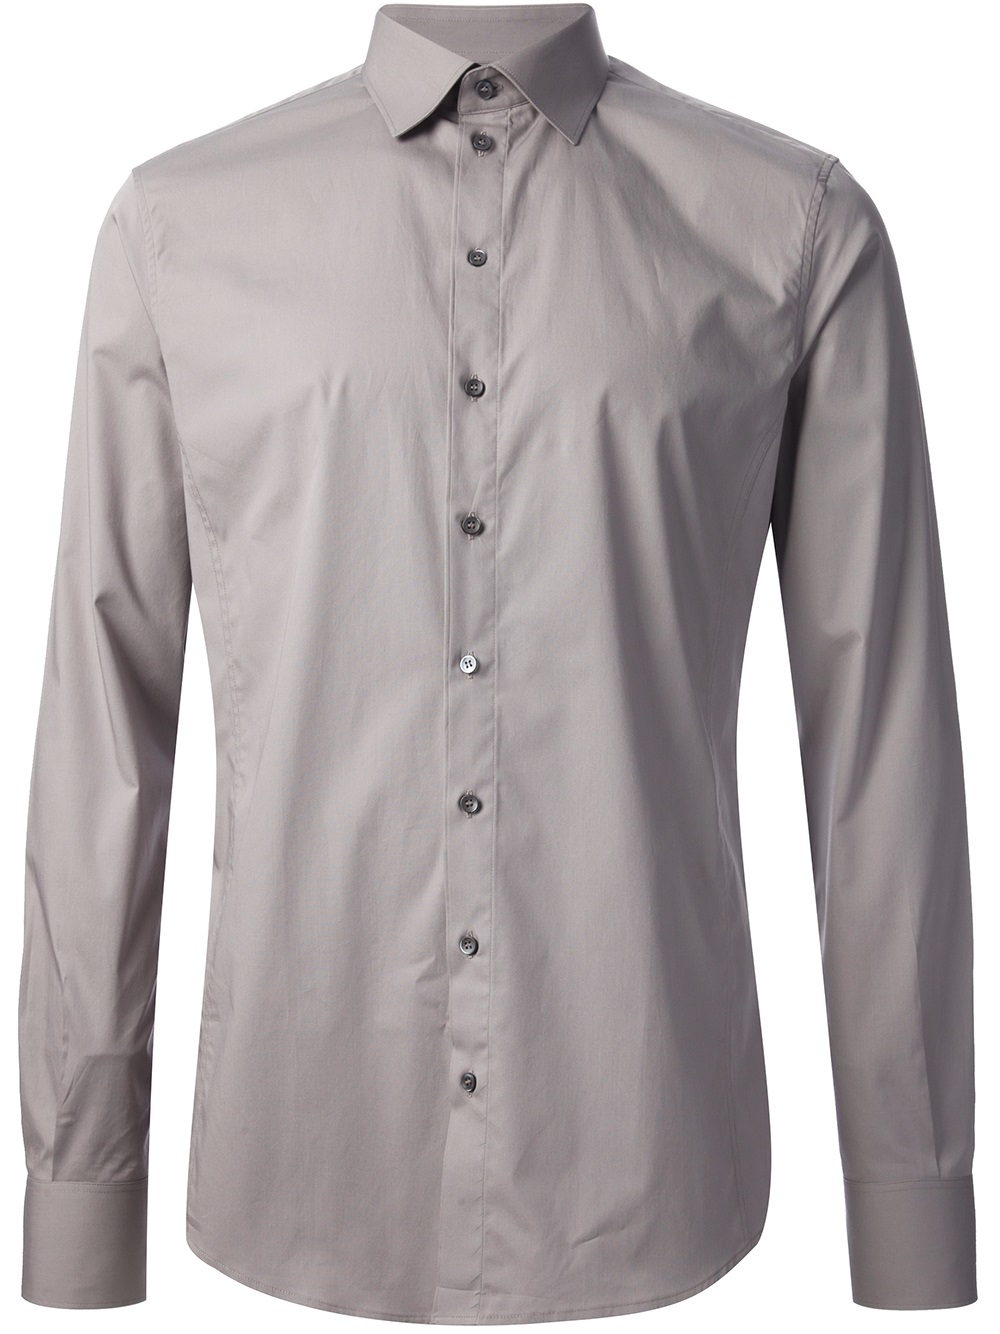 Dolce & gabbana Button Down Shirt in Gray for Men | Lyst